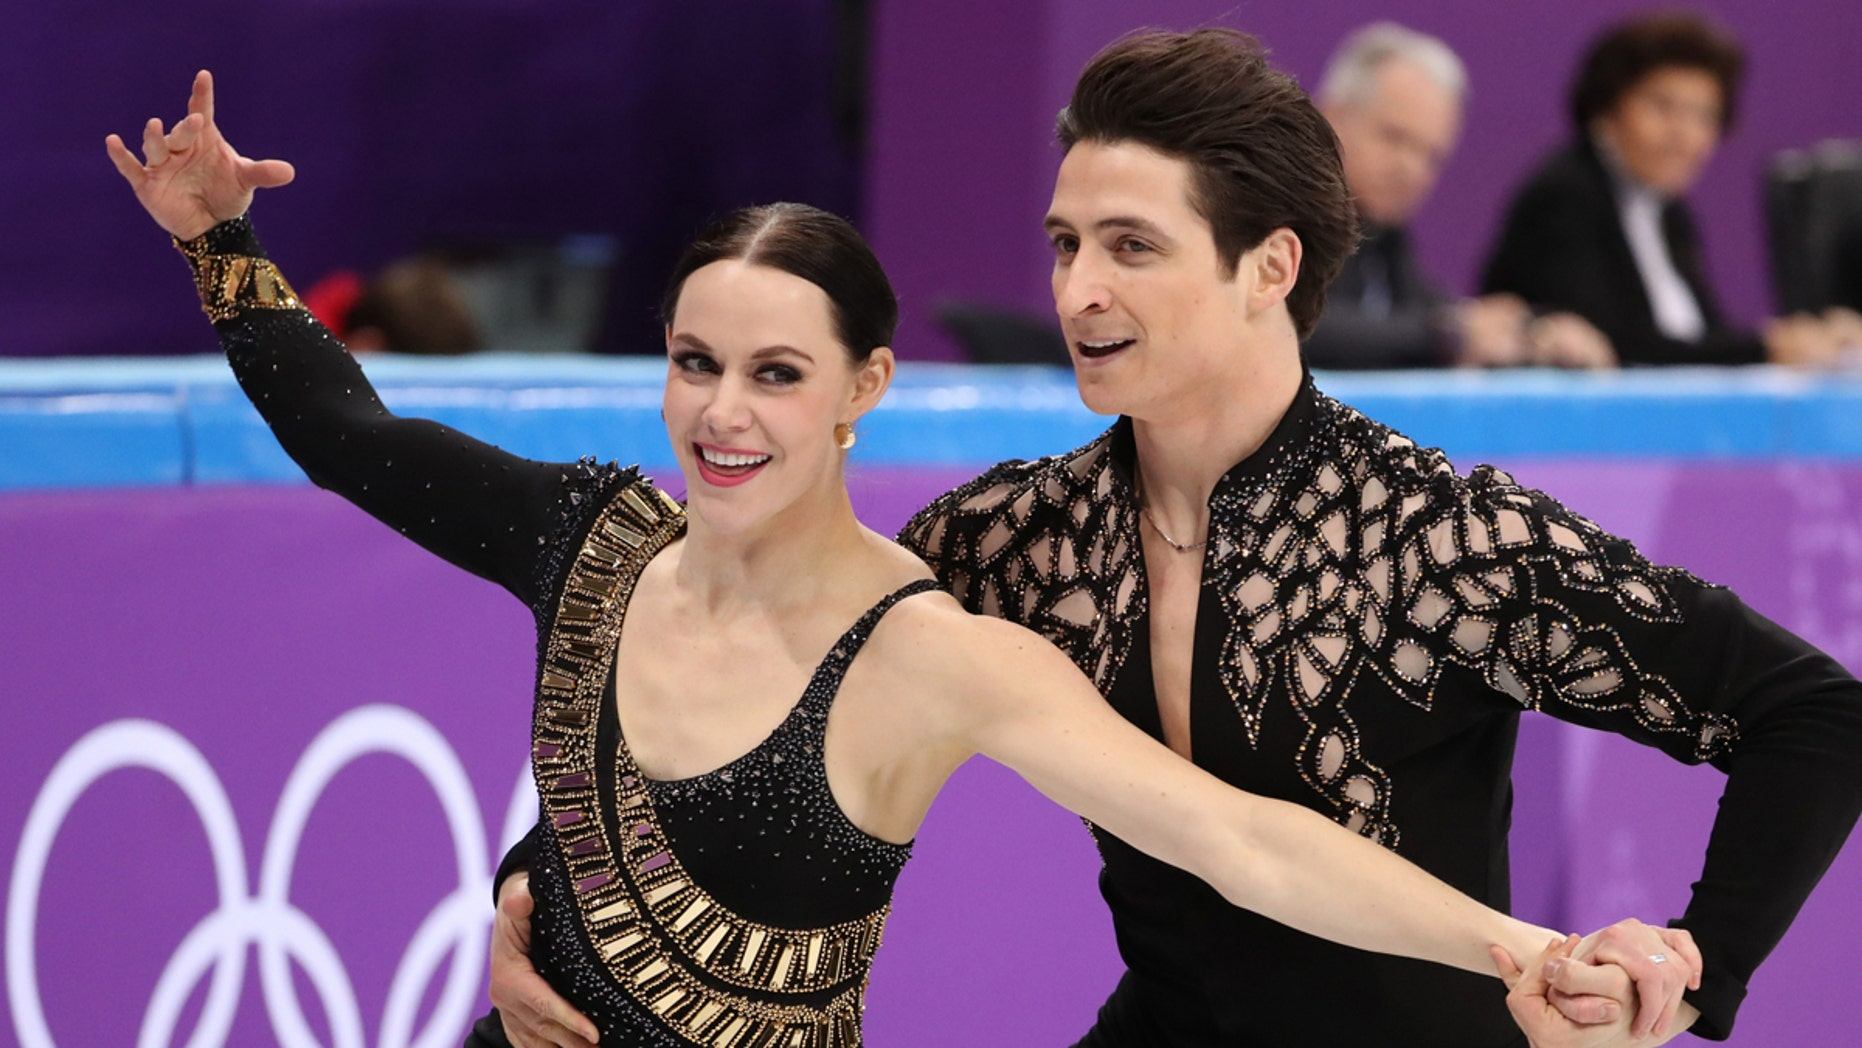 Tessa Virtue and Scott Moir of Canada compete at the Pyeongchang 2018 Winter Olympics.